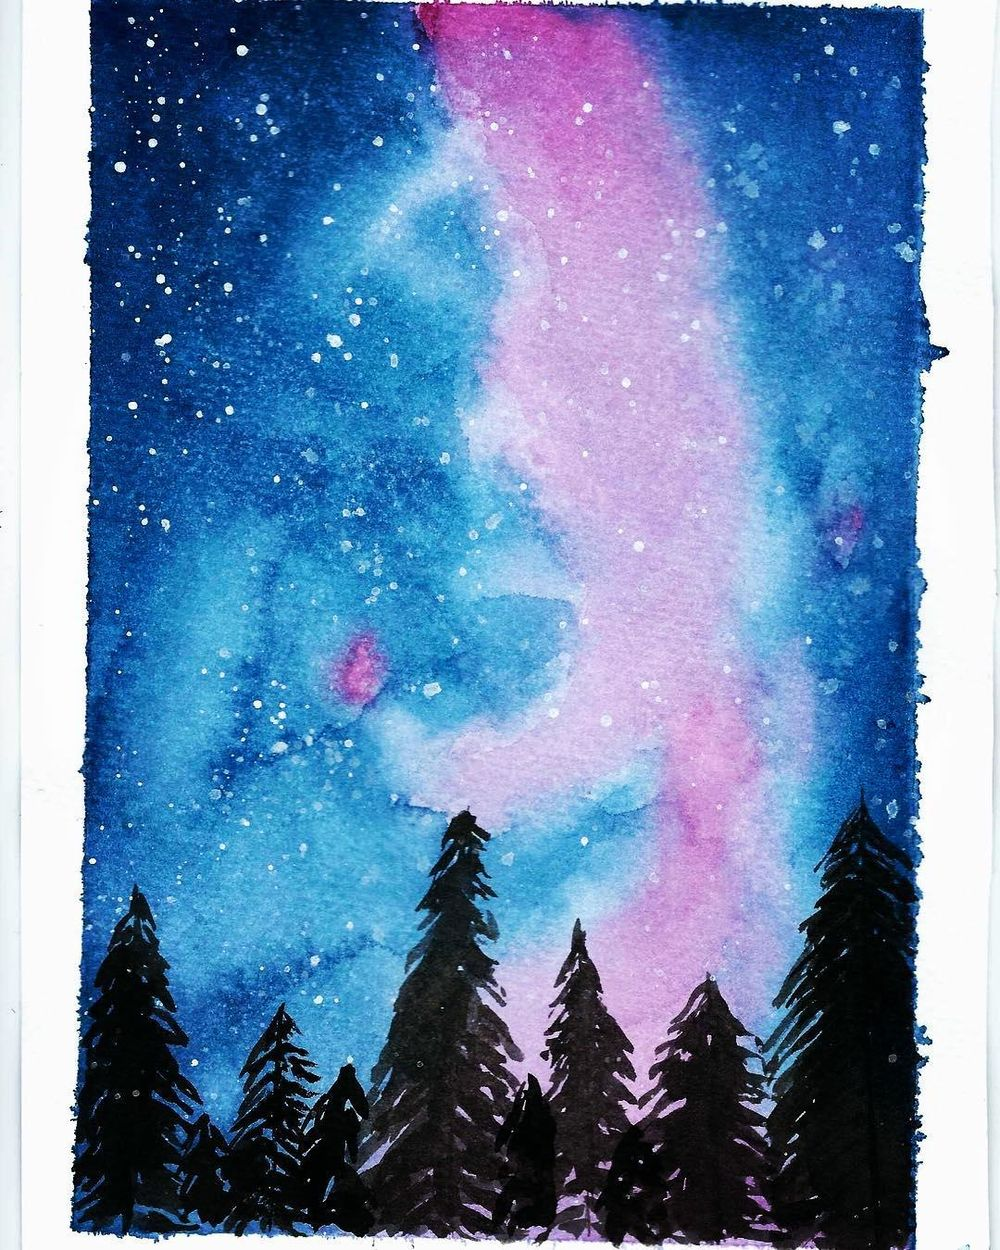 galaxy sky - image 1 - student project